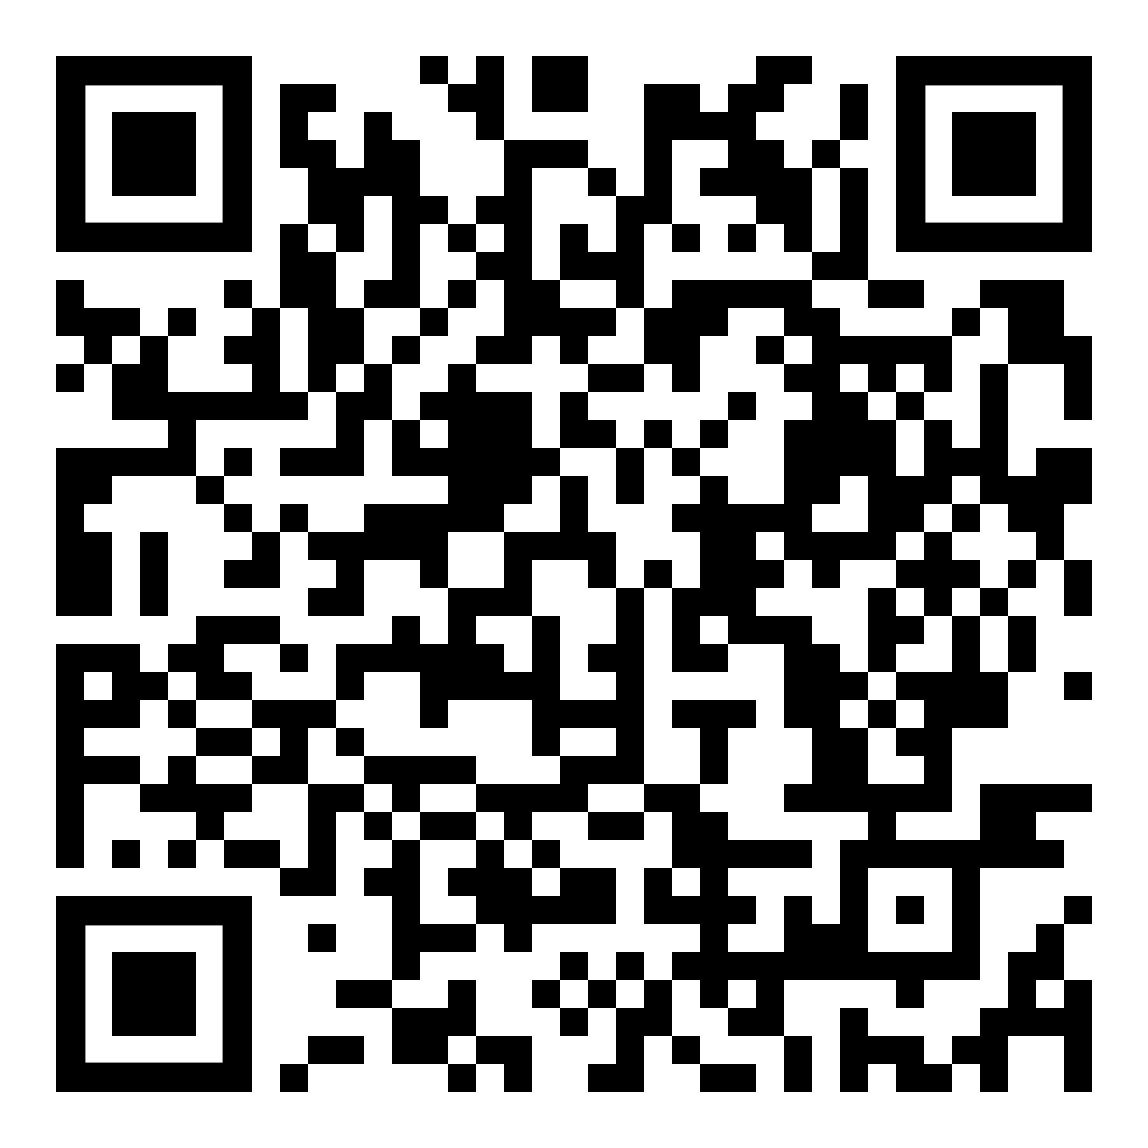 QR-Code for PureSic® Silicon Carbide: Semiconductor Brochure